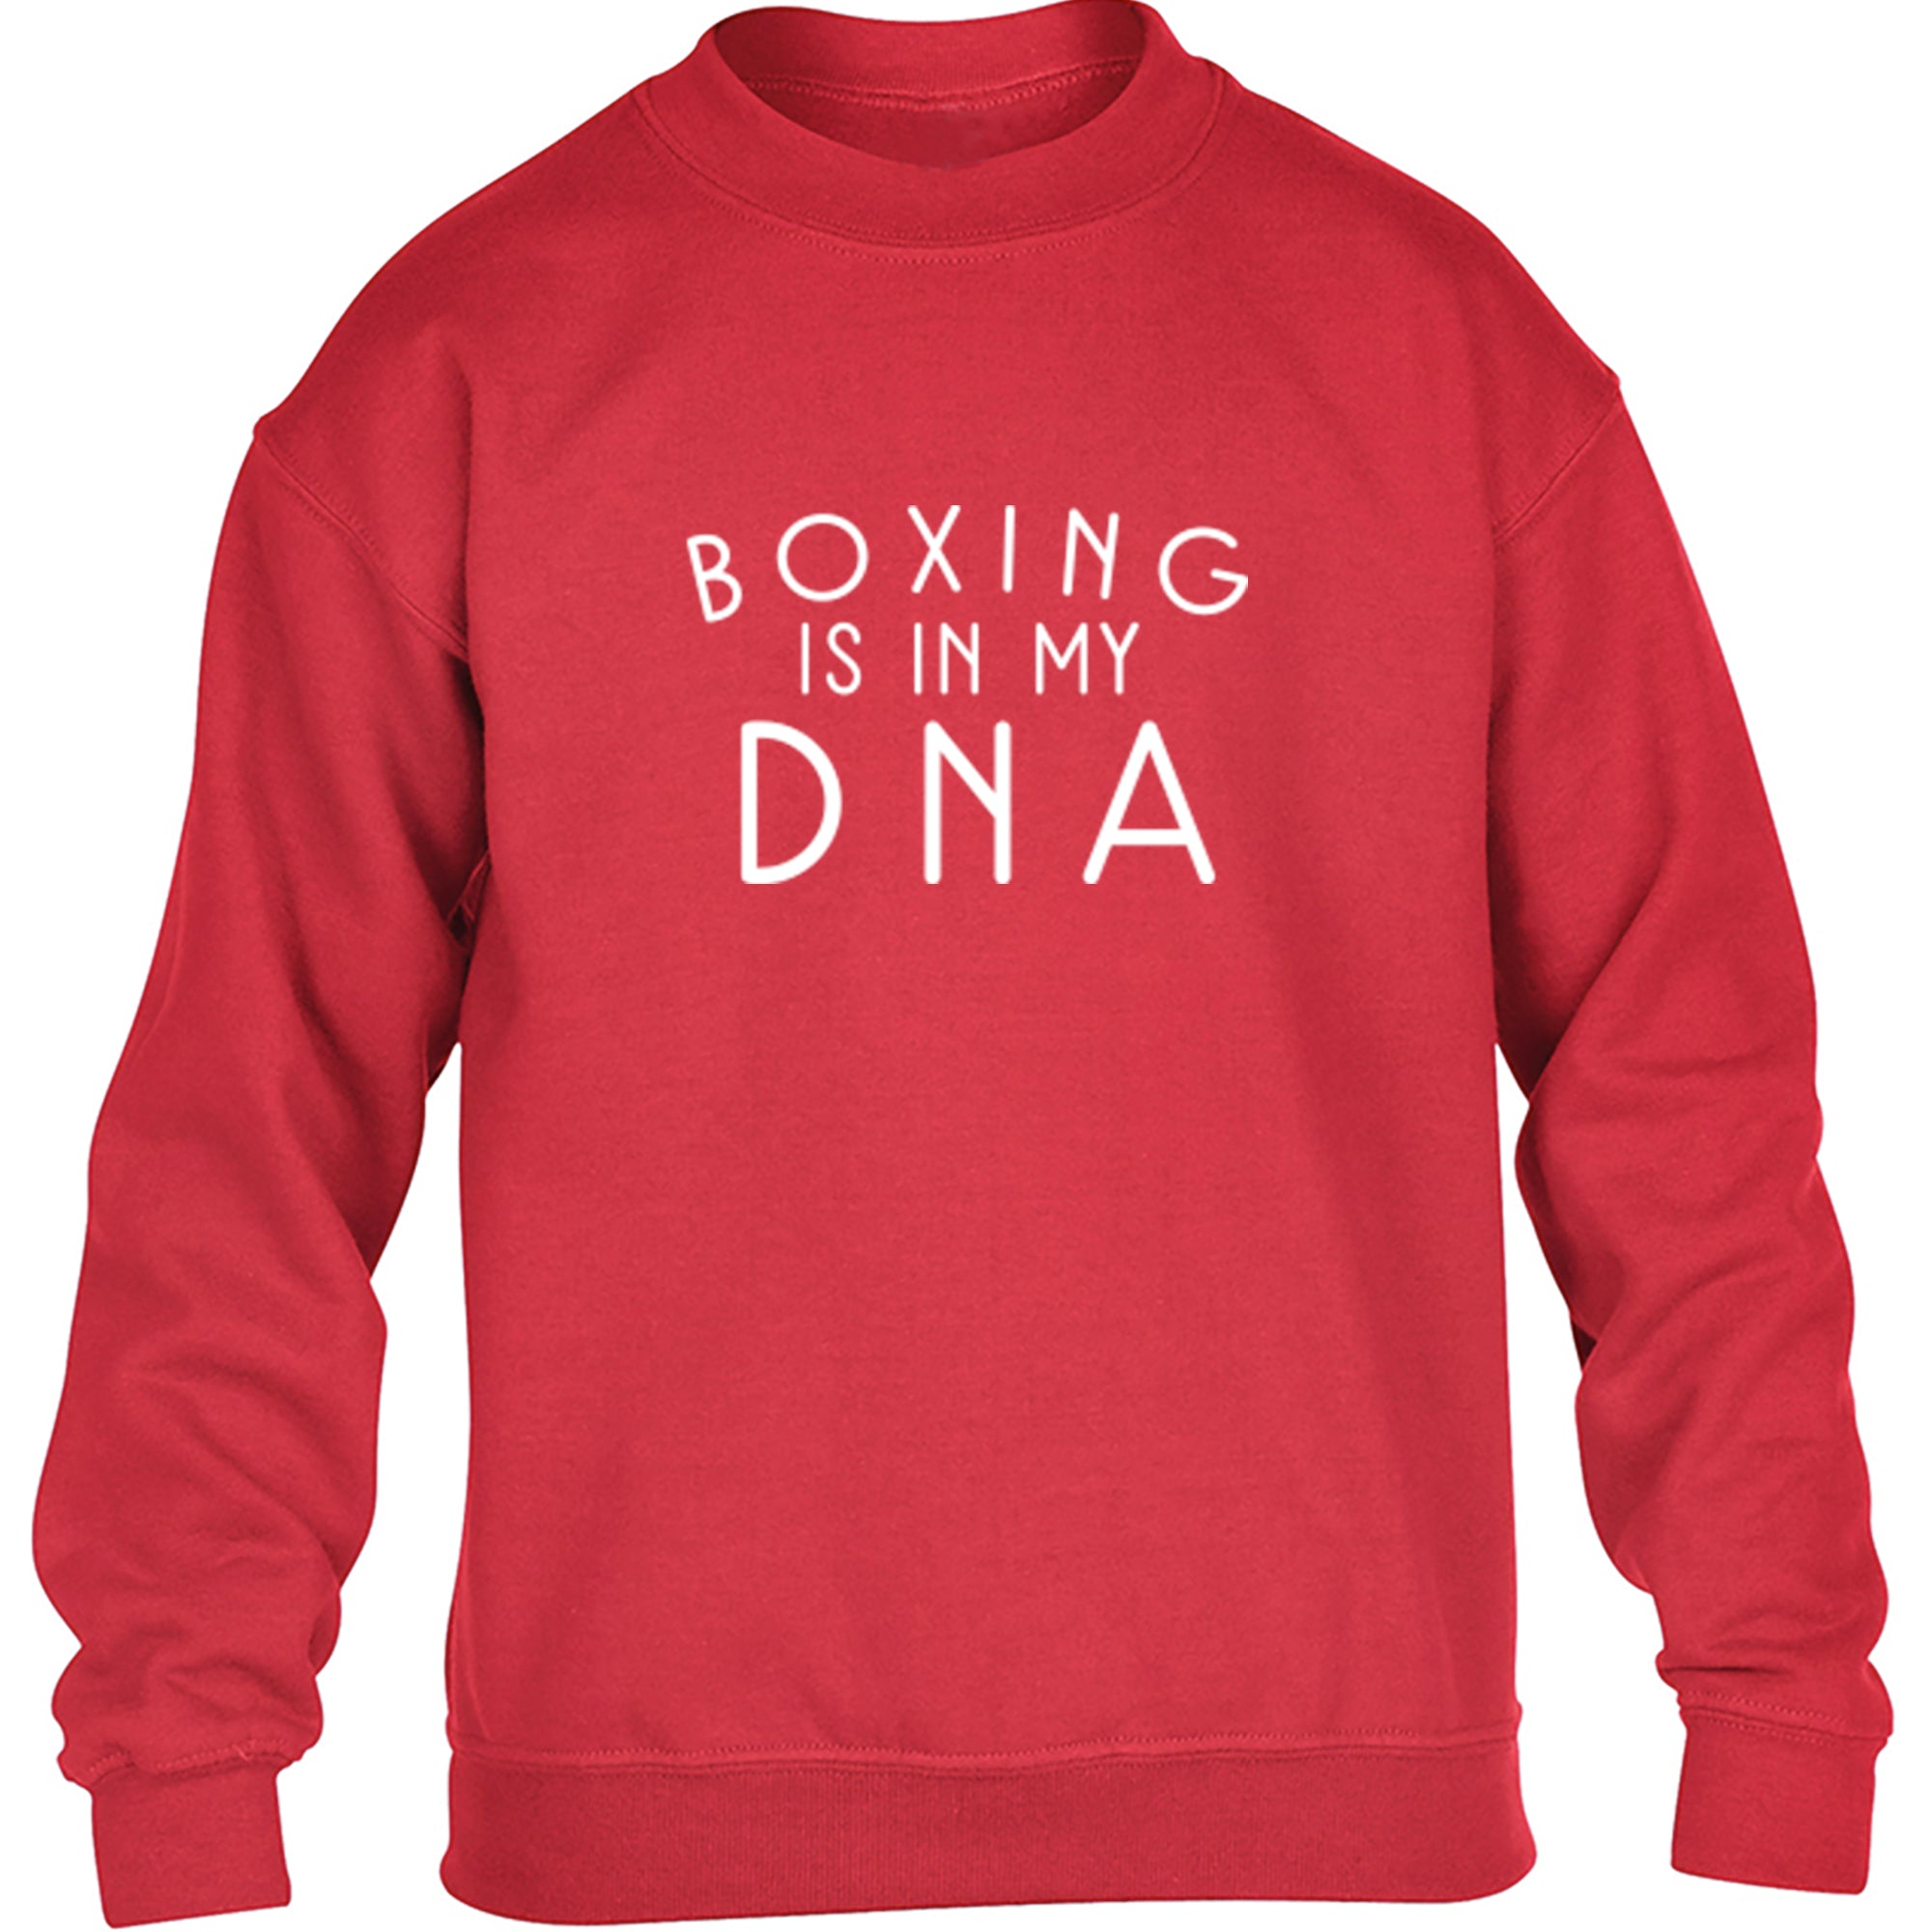 Boxing Is In My DNA Childrens Ages 3/4-12/14 Unisex Jumper S0694